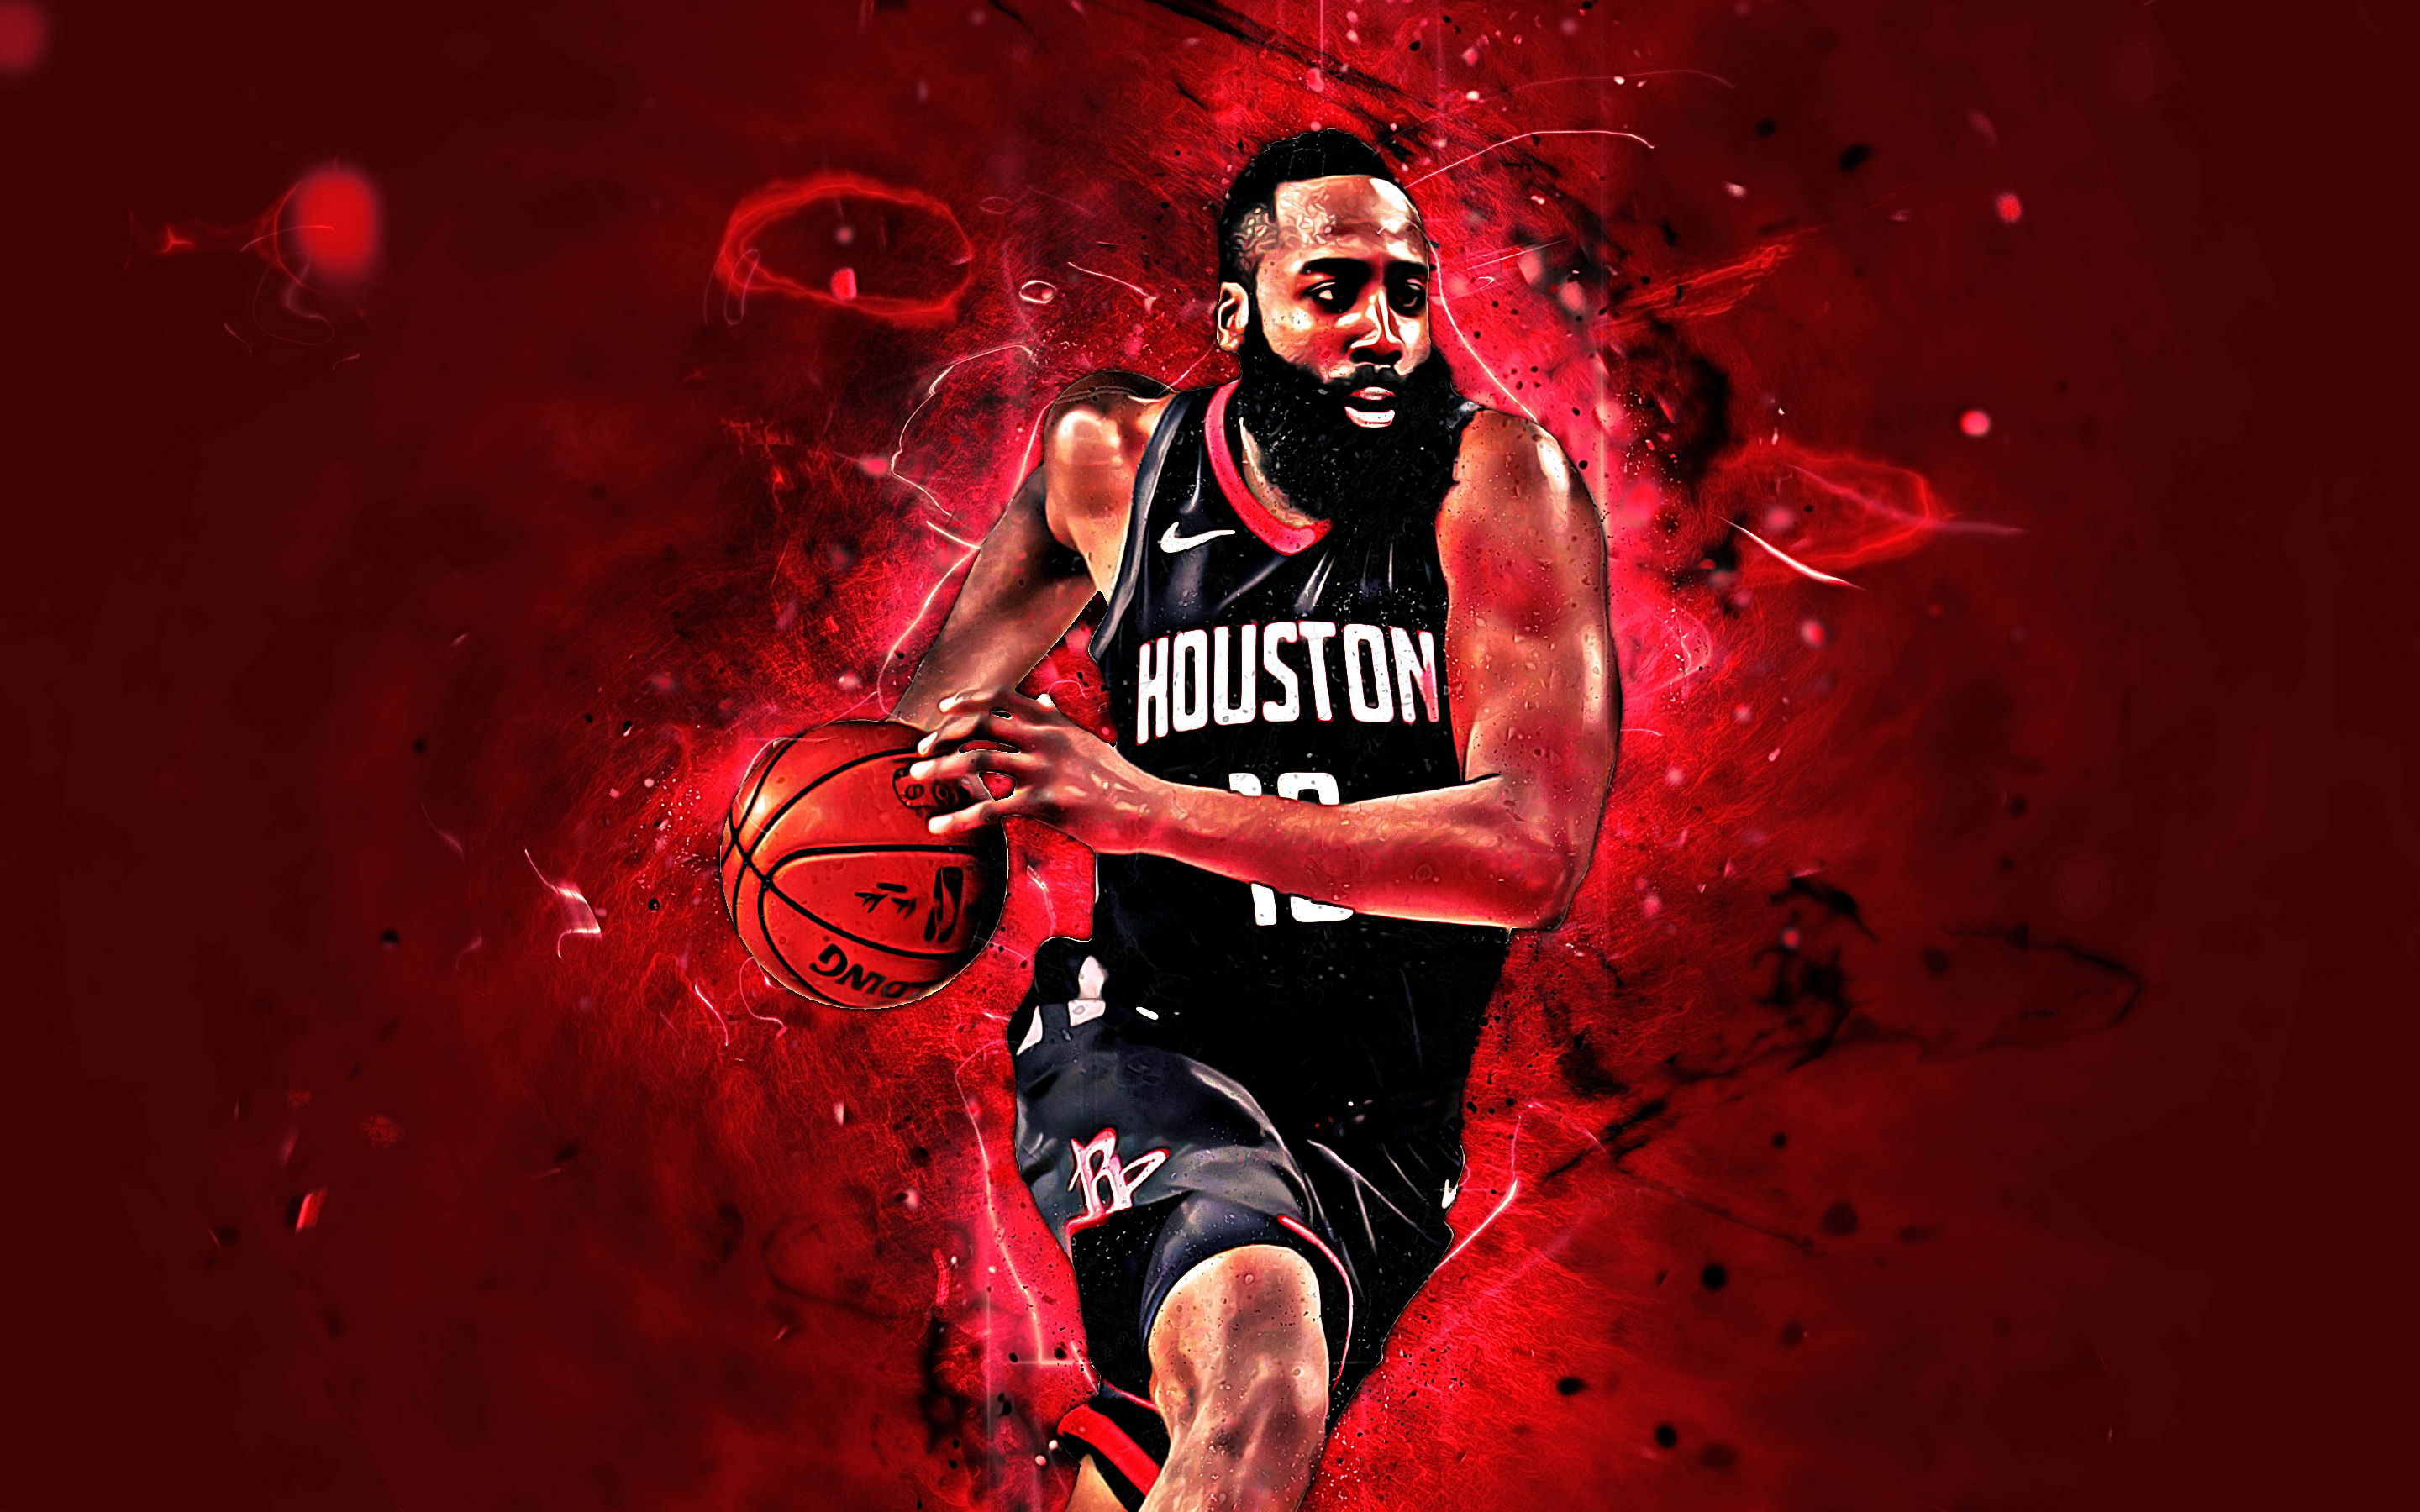 Wallpaper of Basketball, Houston Rockets, James Harden, NBA background & HD image